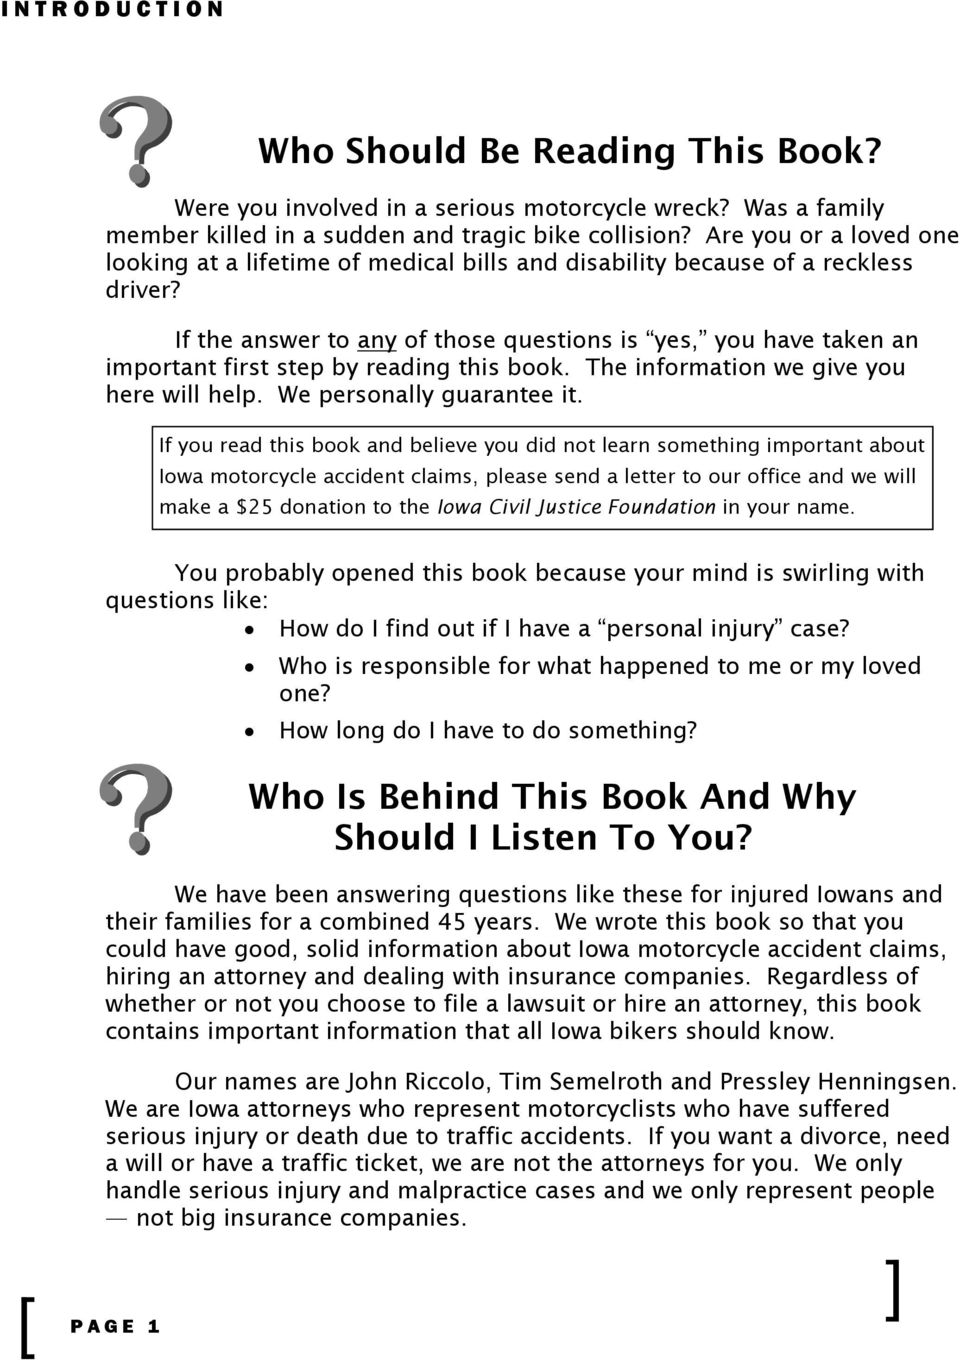 If the answer to any of those questions is yes, you have taken an important first step by reading this book. The information we give you here will help. We personally guarantee it.